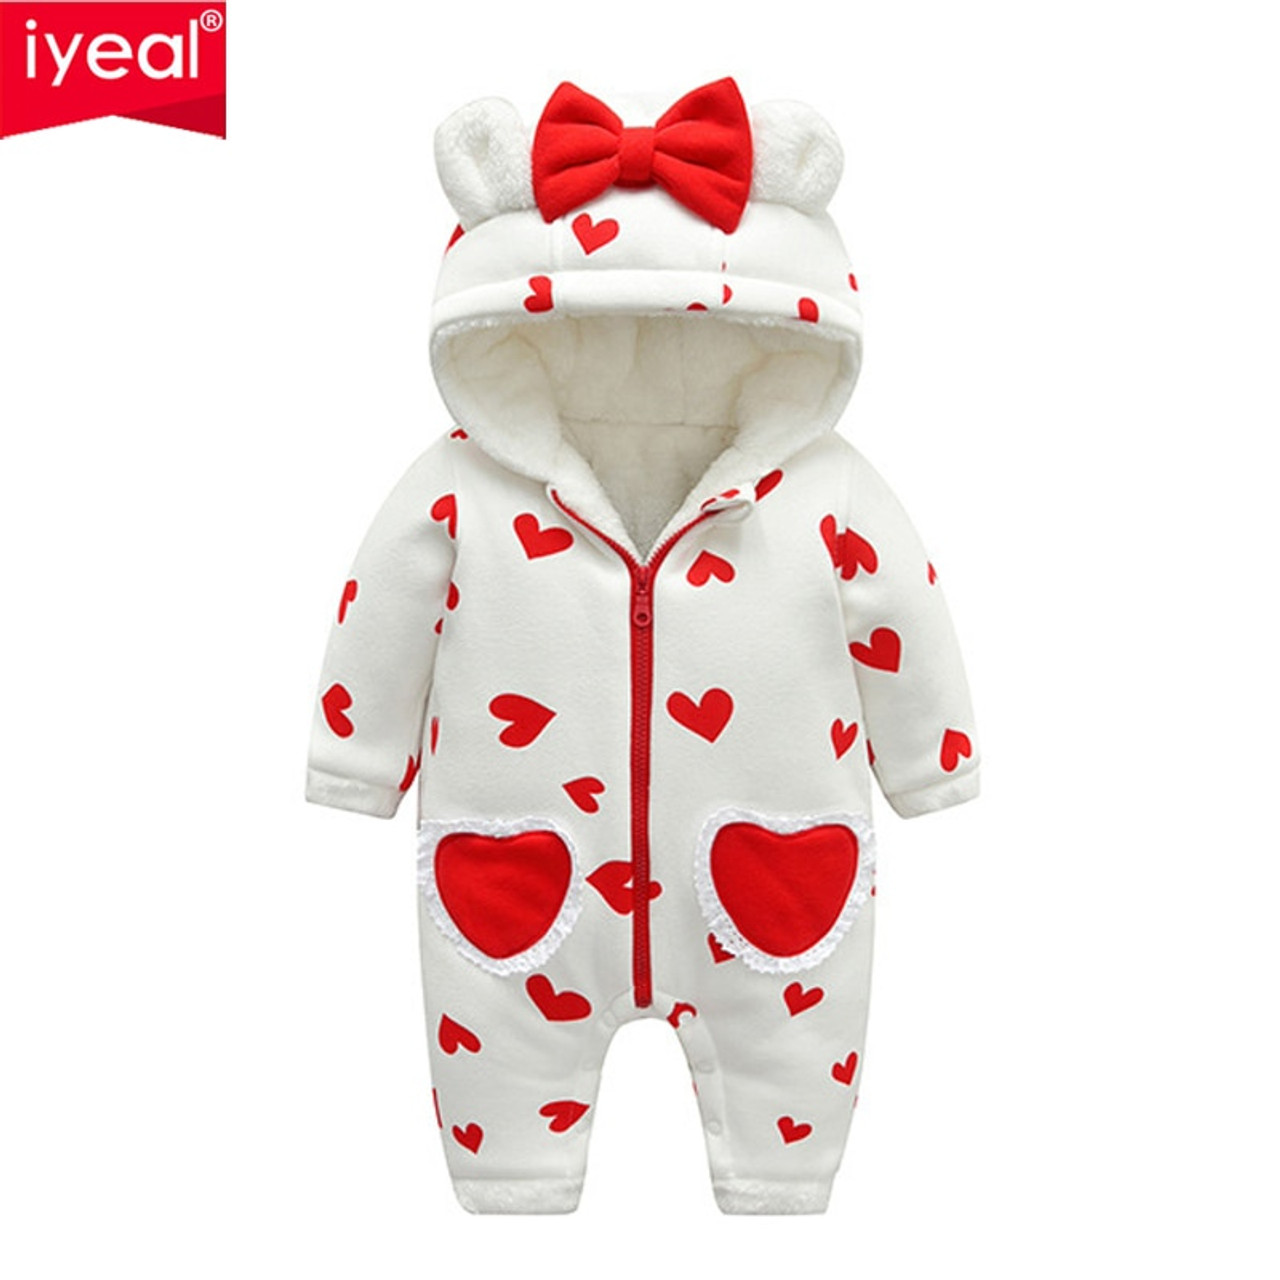 8a823e61d7e6 IYEAL Newest Baby Rompers Winter Baby Girls Clothes Cute Hooded Soft ...